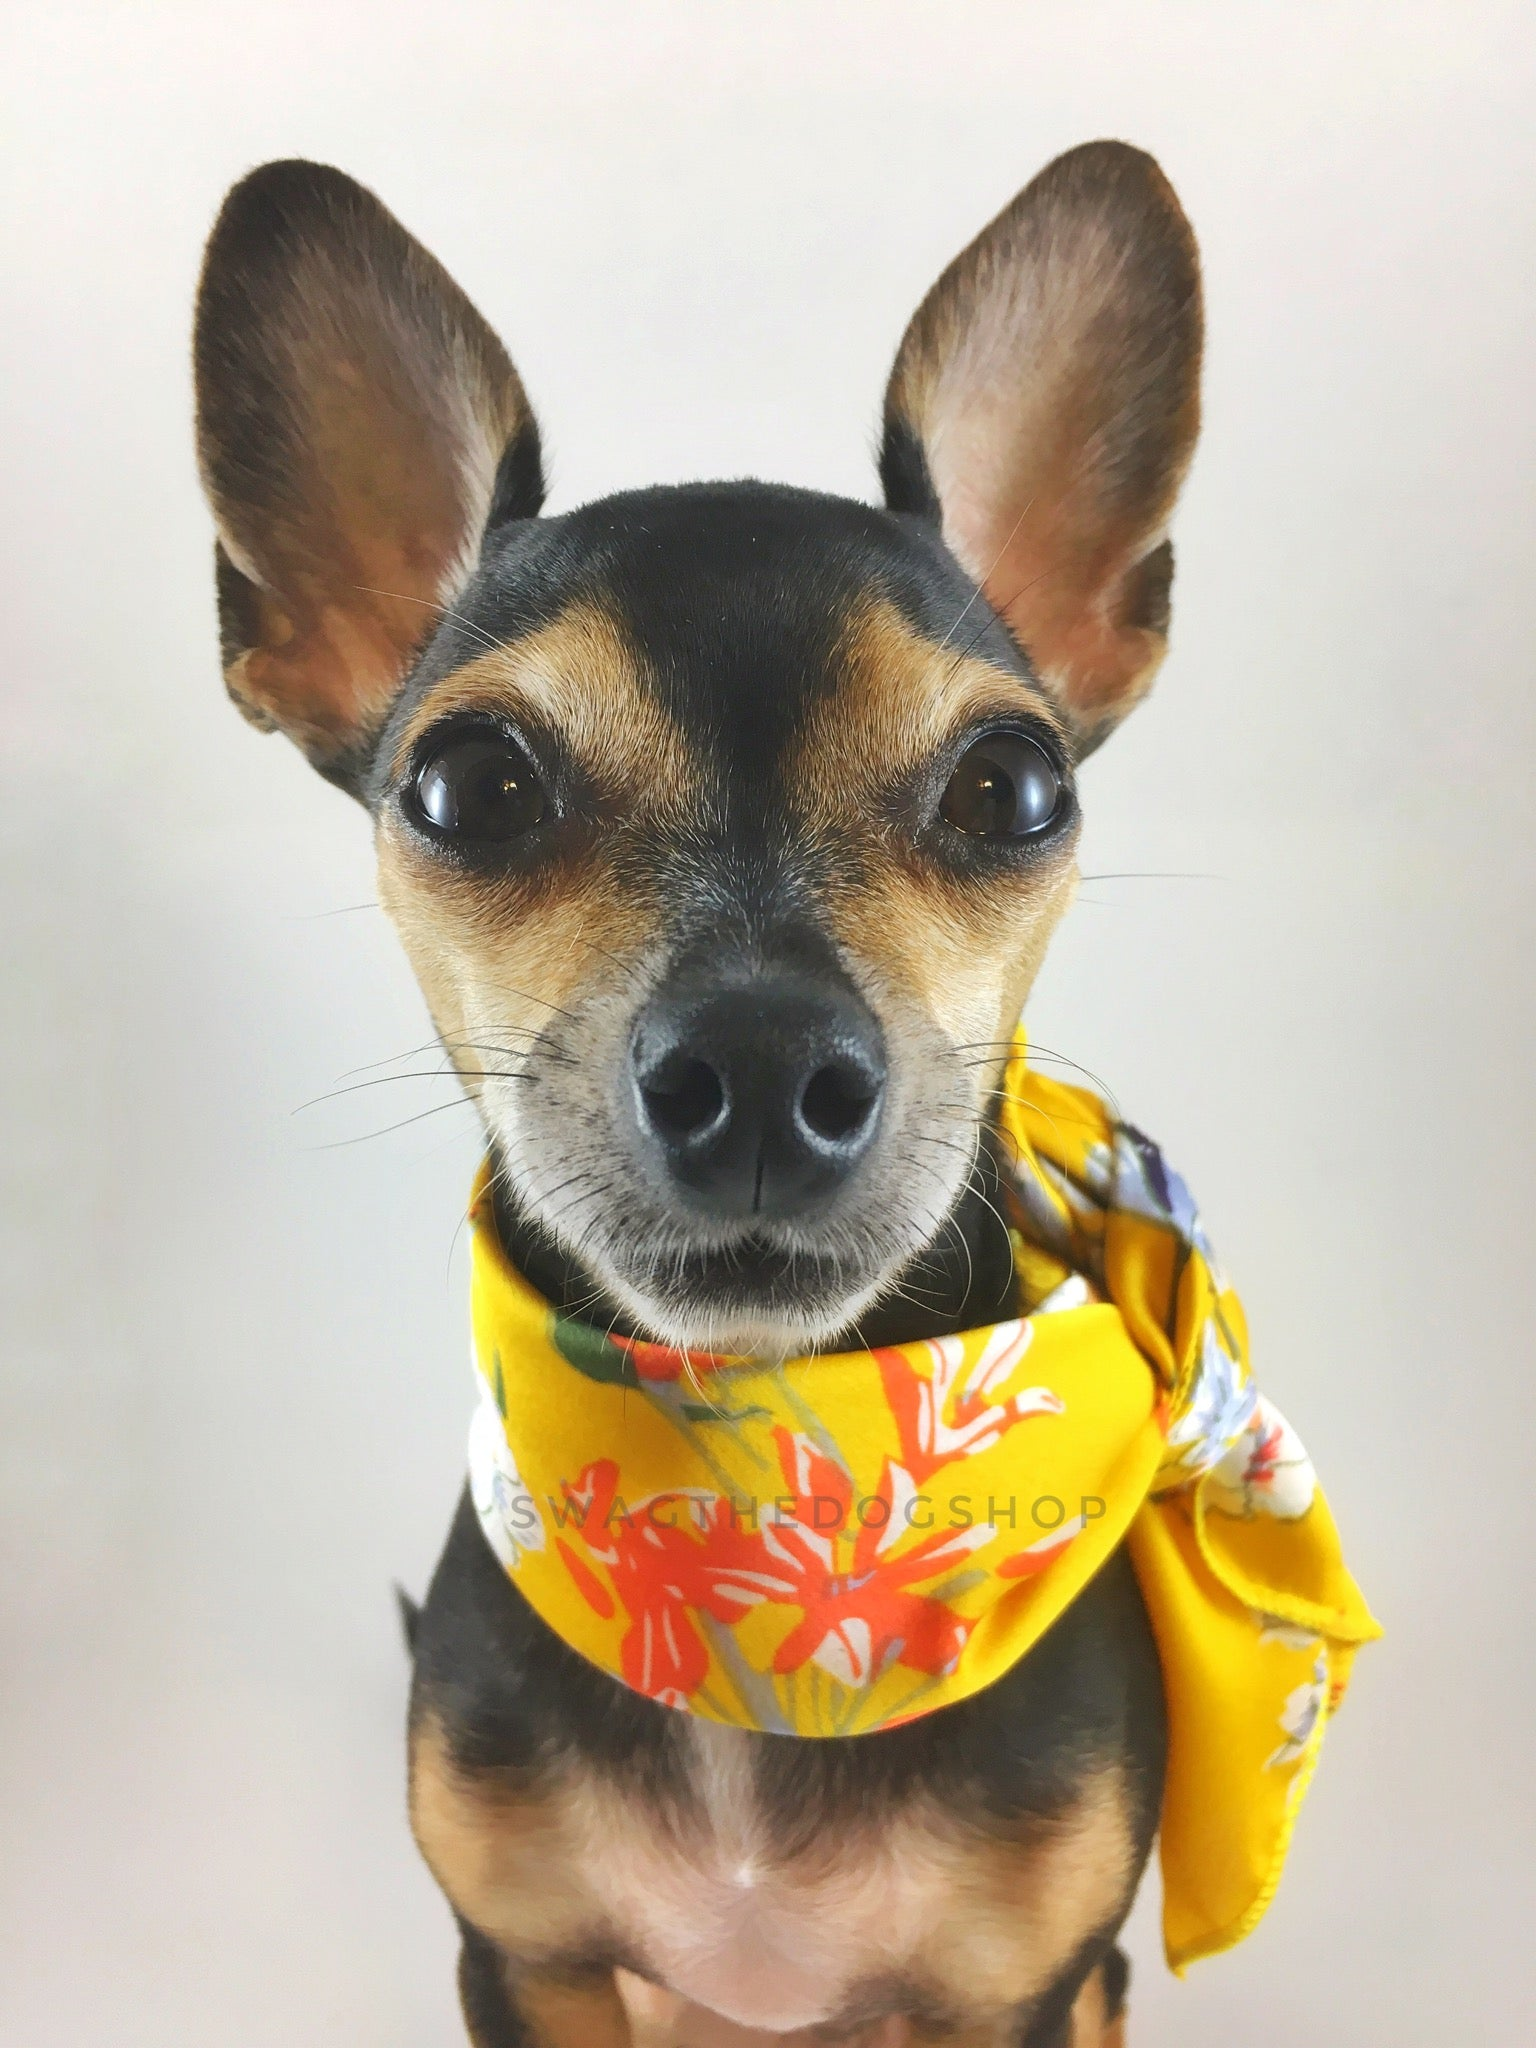 Yellow Wild Flower Swagdana Scarf - Bust of Cute Chihuahua Wearing Swagdana Scarf as Neckerchief. Dog Bandana. Dog Scarf.